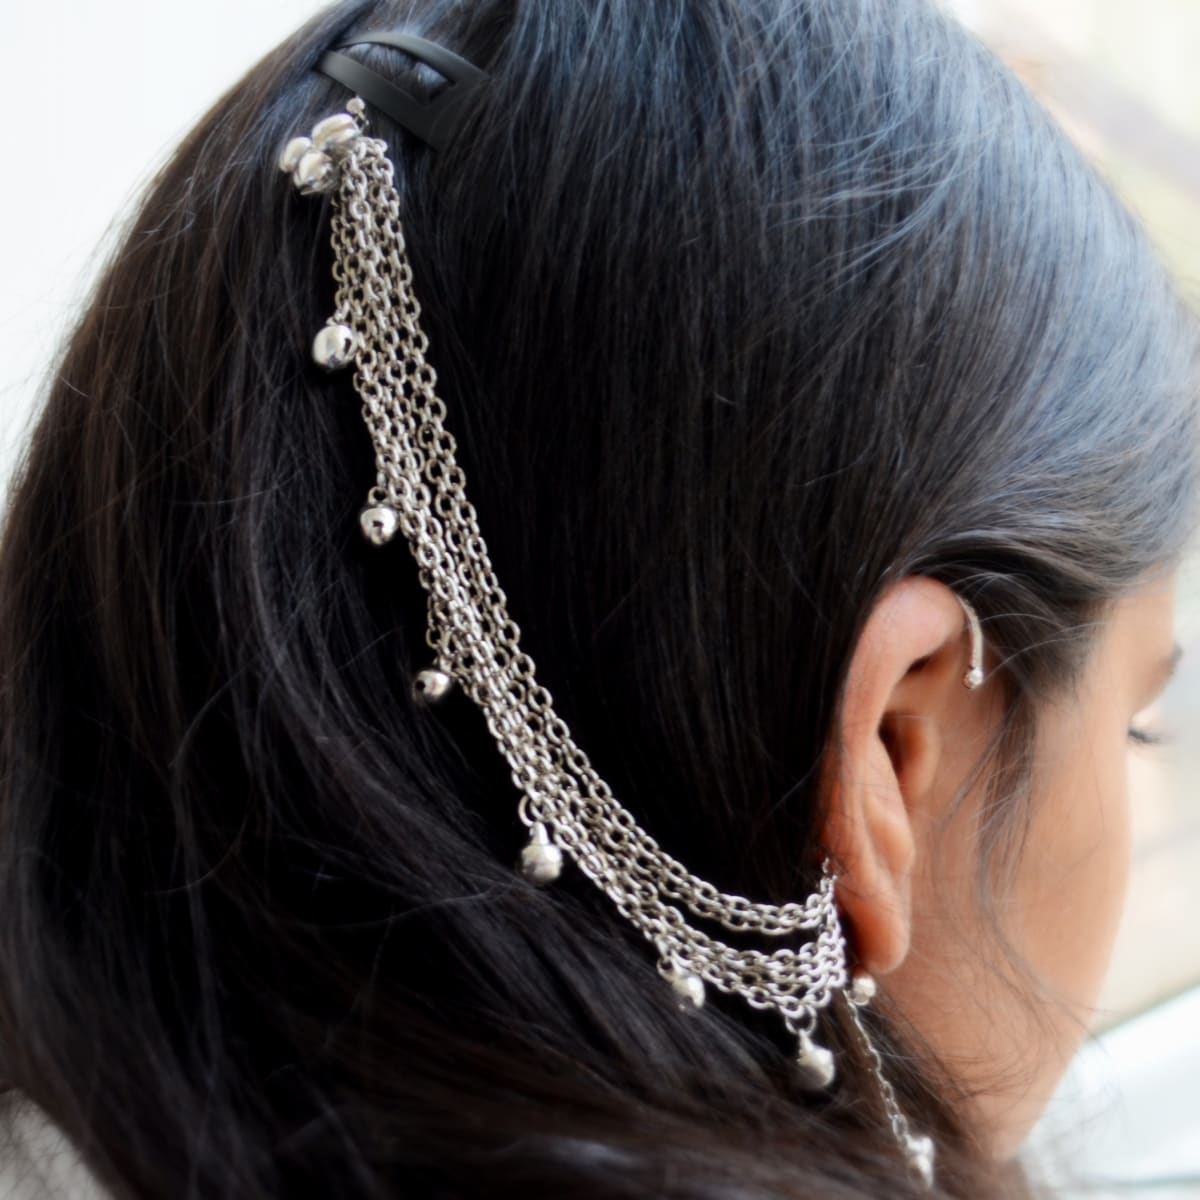 hair accessories Ear Cuff No Piercing Indian Wrap Earring Statement Jewelry - by Pretty Ponytails